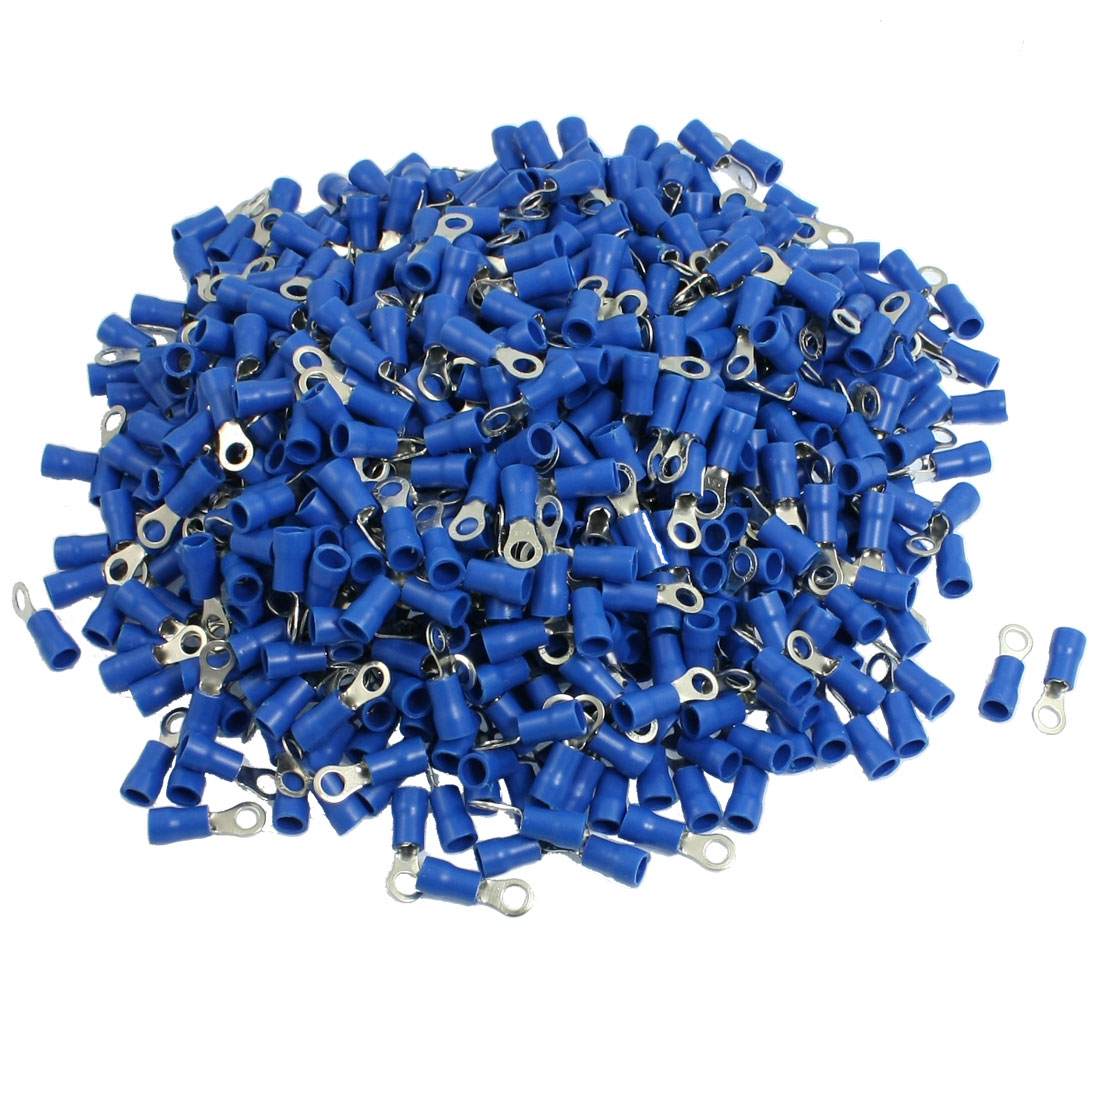 1000-x-Blue-PVC-Insulating-Sleeve-Ring-Terminals-Cable-Lug-RV2-4S-AWG-16-14